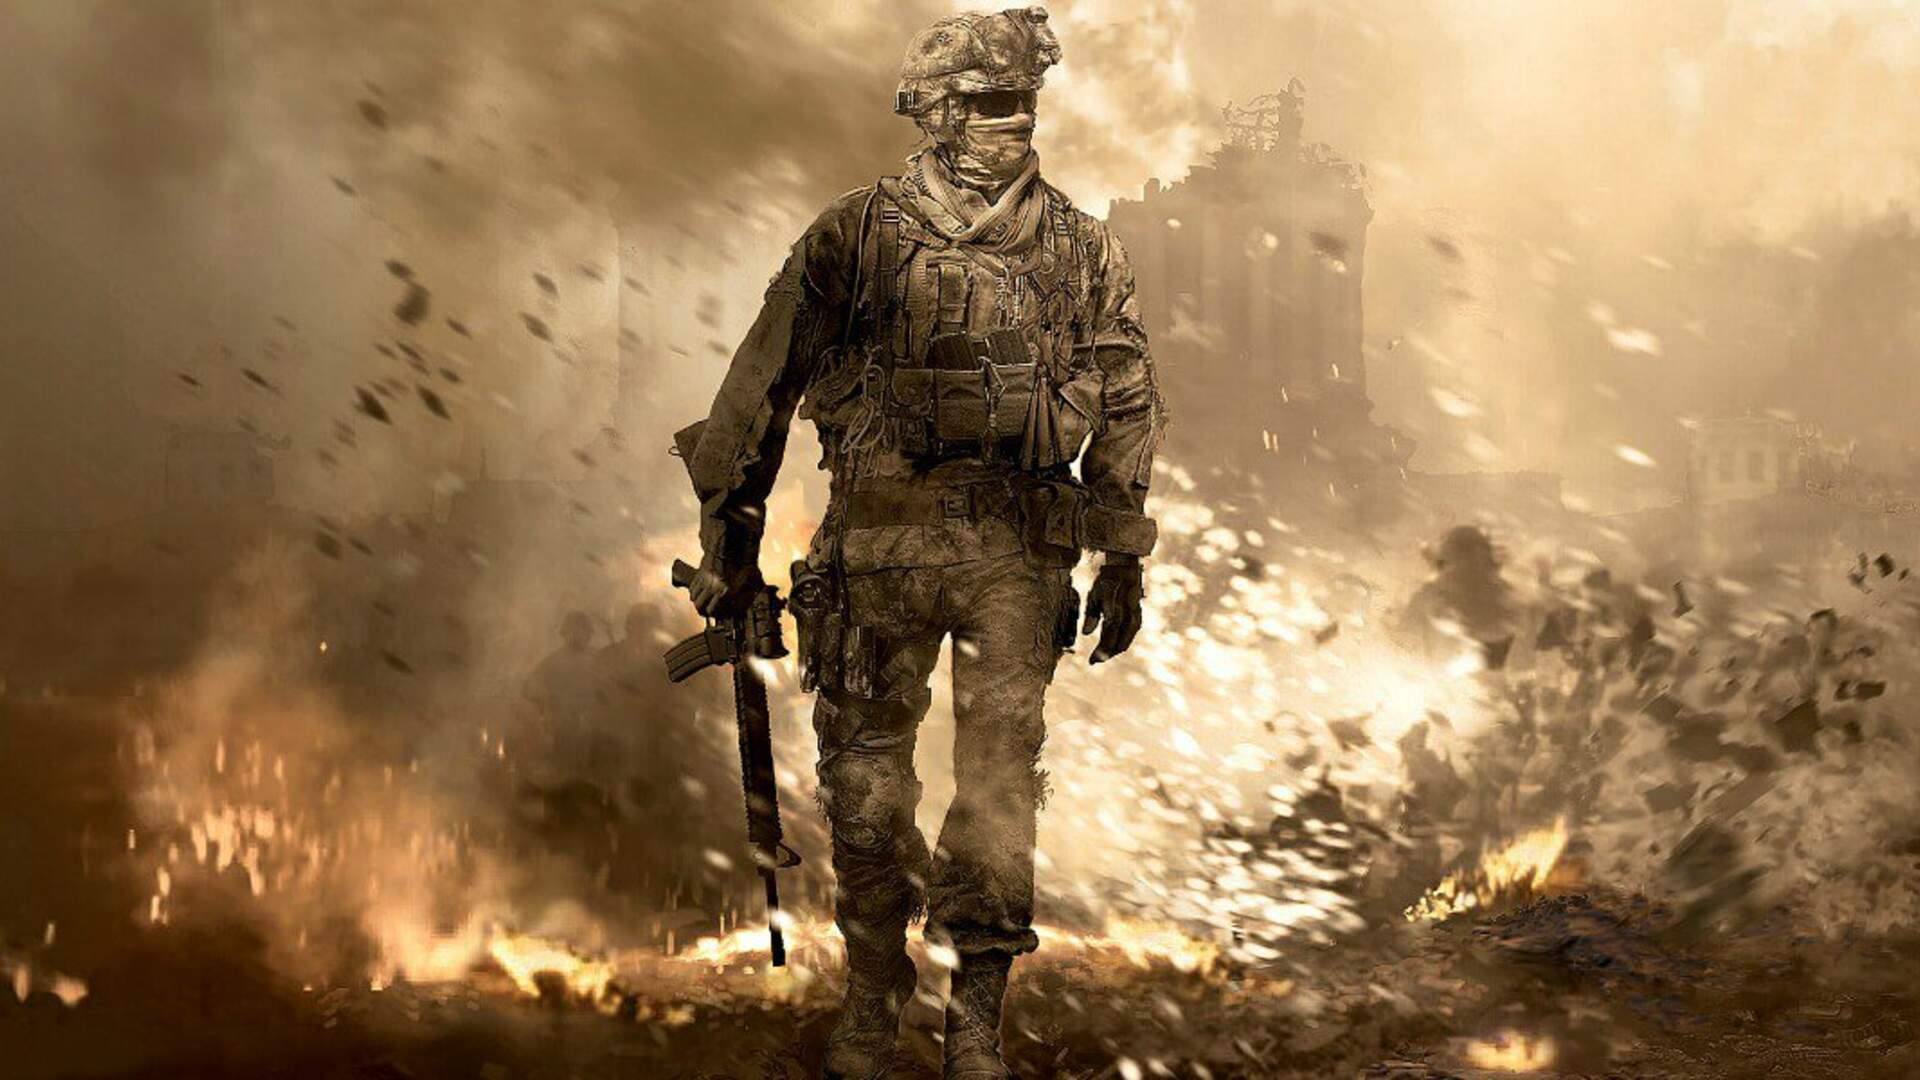 A Trailer for Call of Duty: Modern Warfare 2 Campaign Remastered Has Leaked